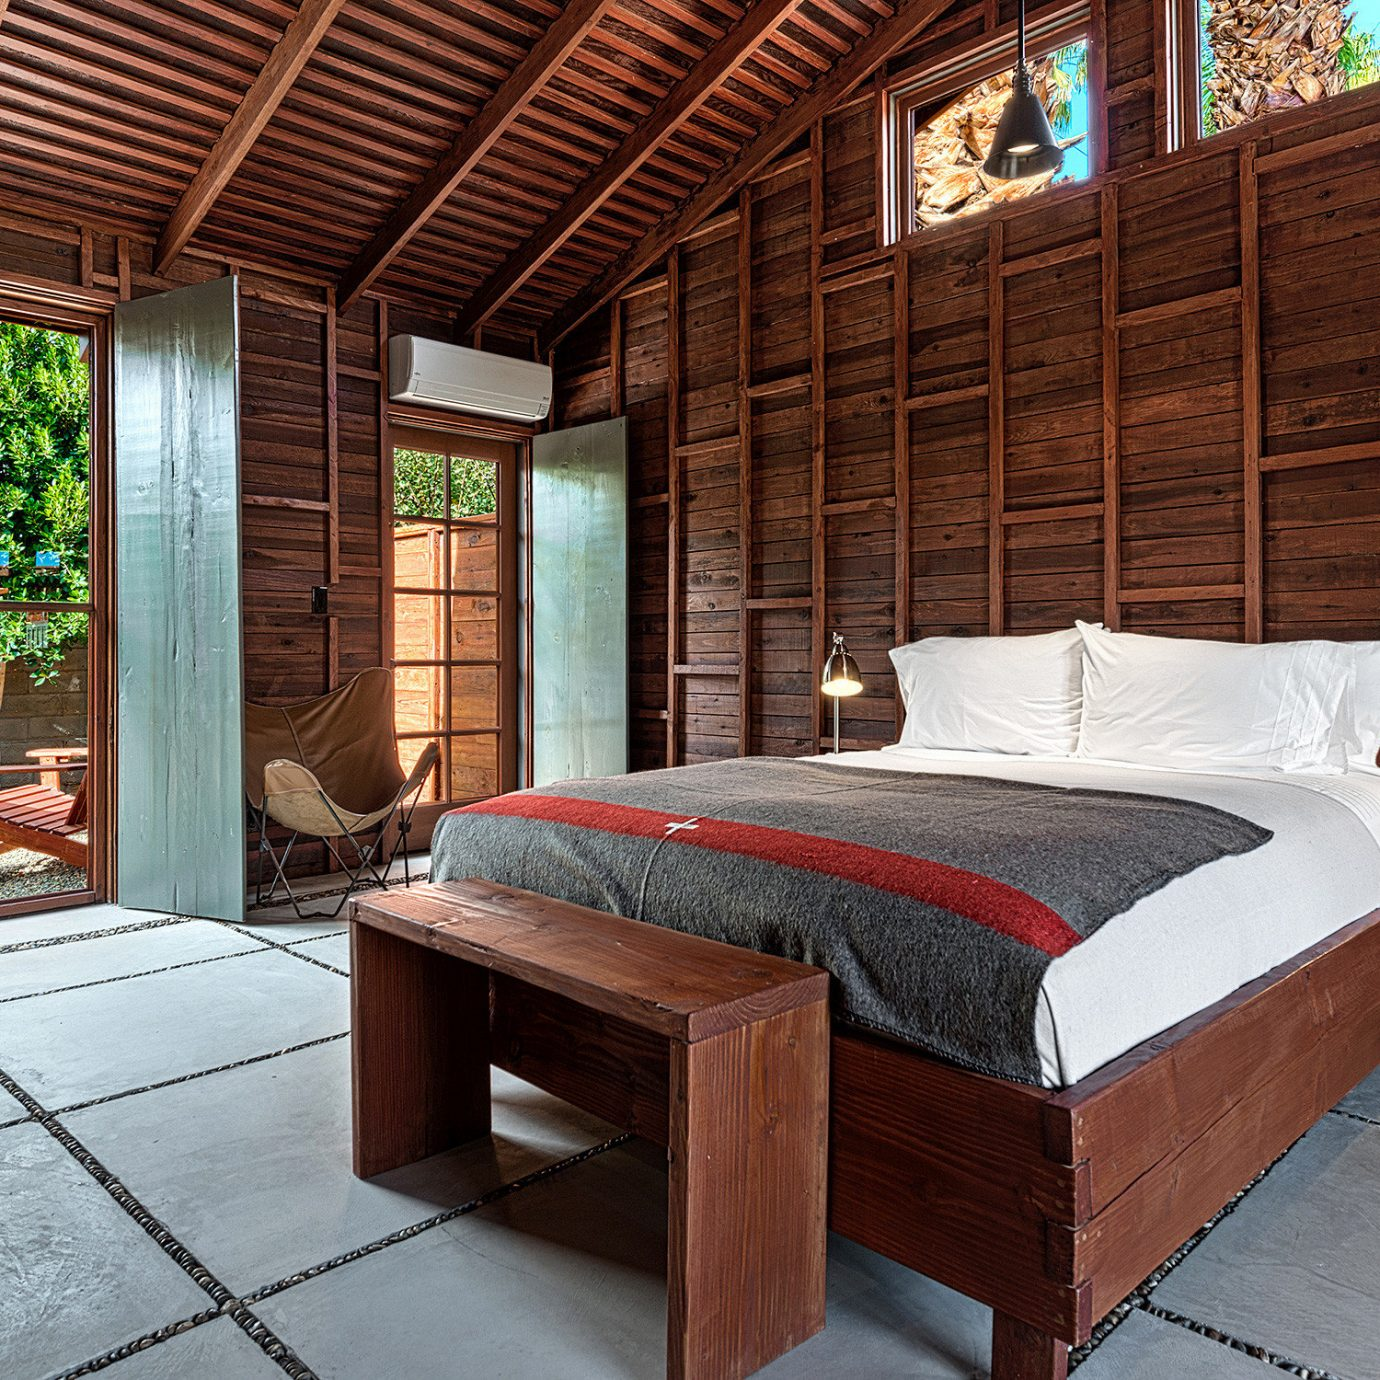 Bedroom Courtyard Hotels Lodge Lounge Patio Rustic Terrace property house home cottage Villa stone